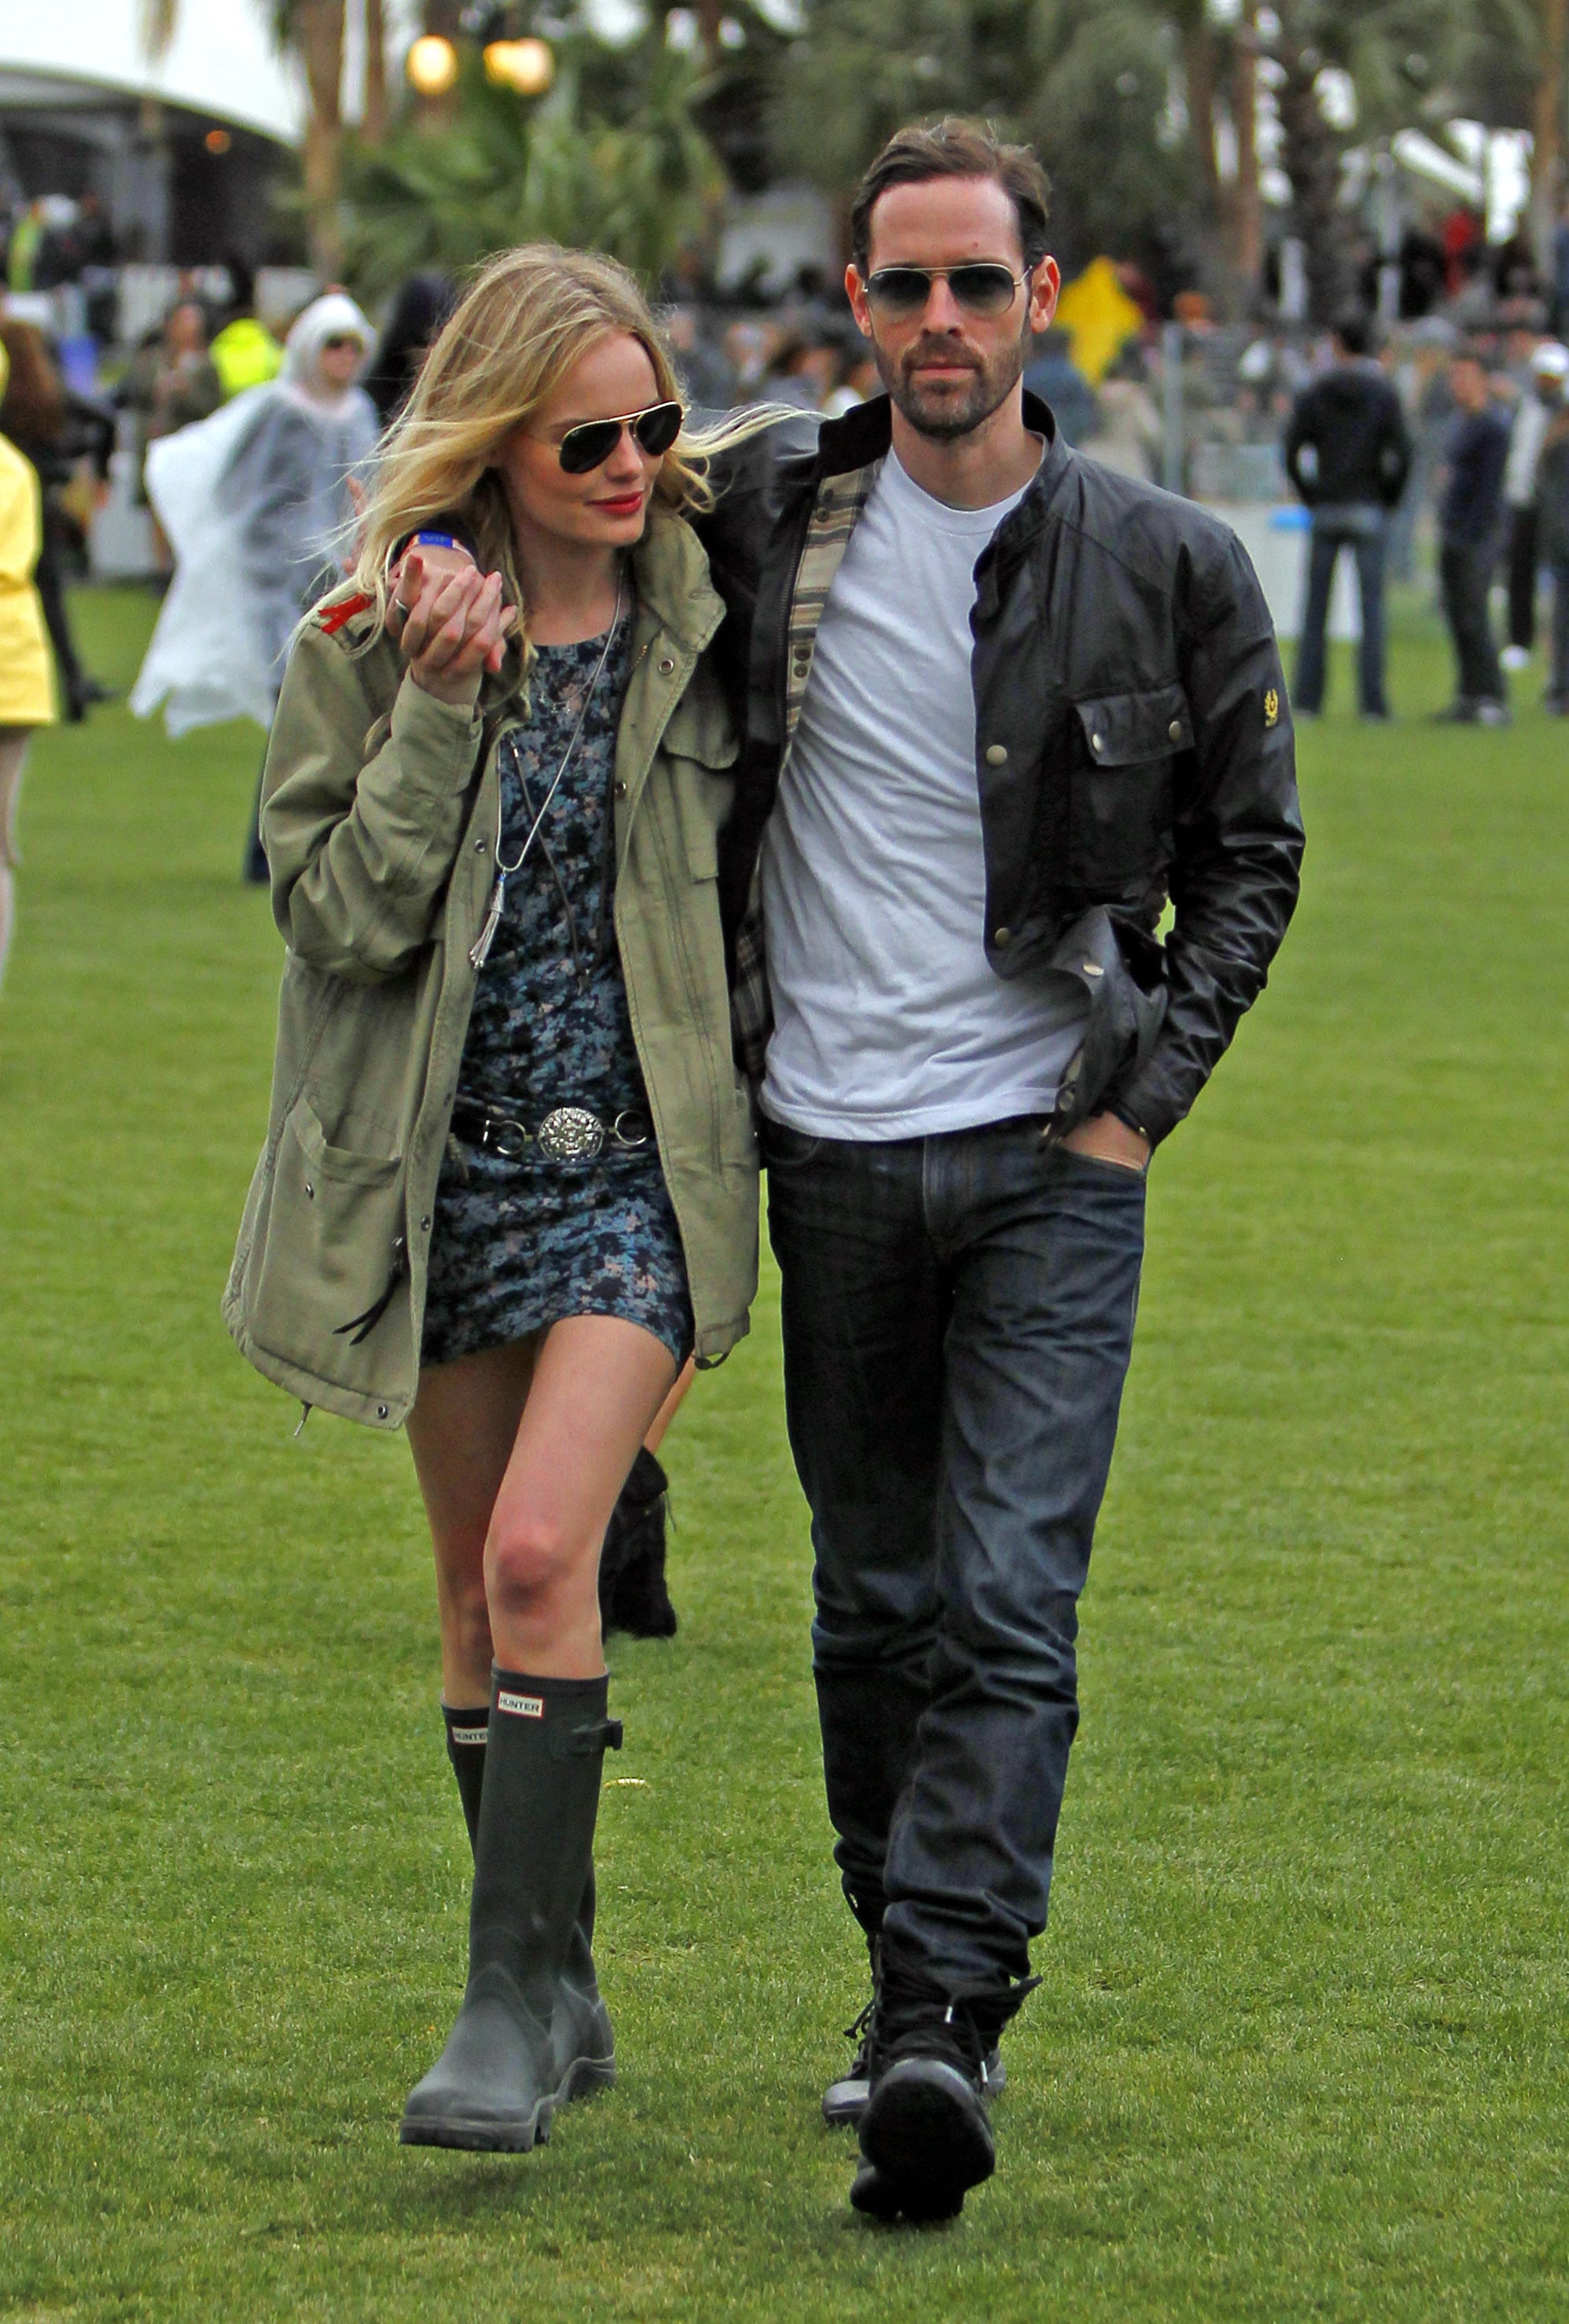 Kate Bosworth and Michael Polish showed PDA on the Coachella grounds Friday, when they checked out a performance by Arctic Monkeys. We spotted them holding hands as they walked through the VIP section in the afternoon.